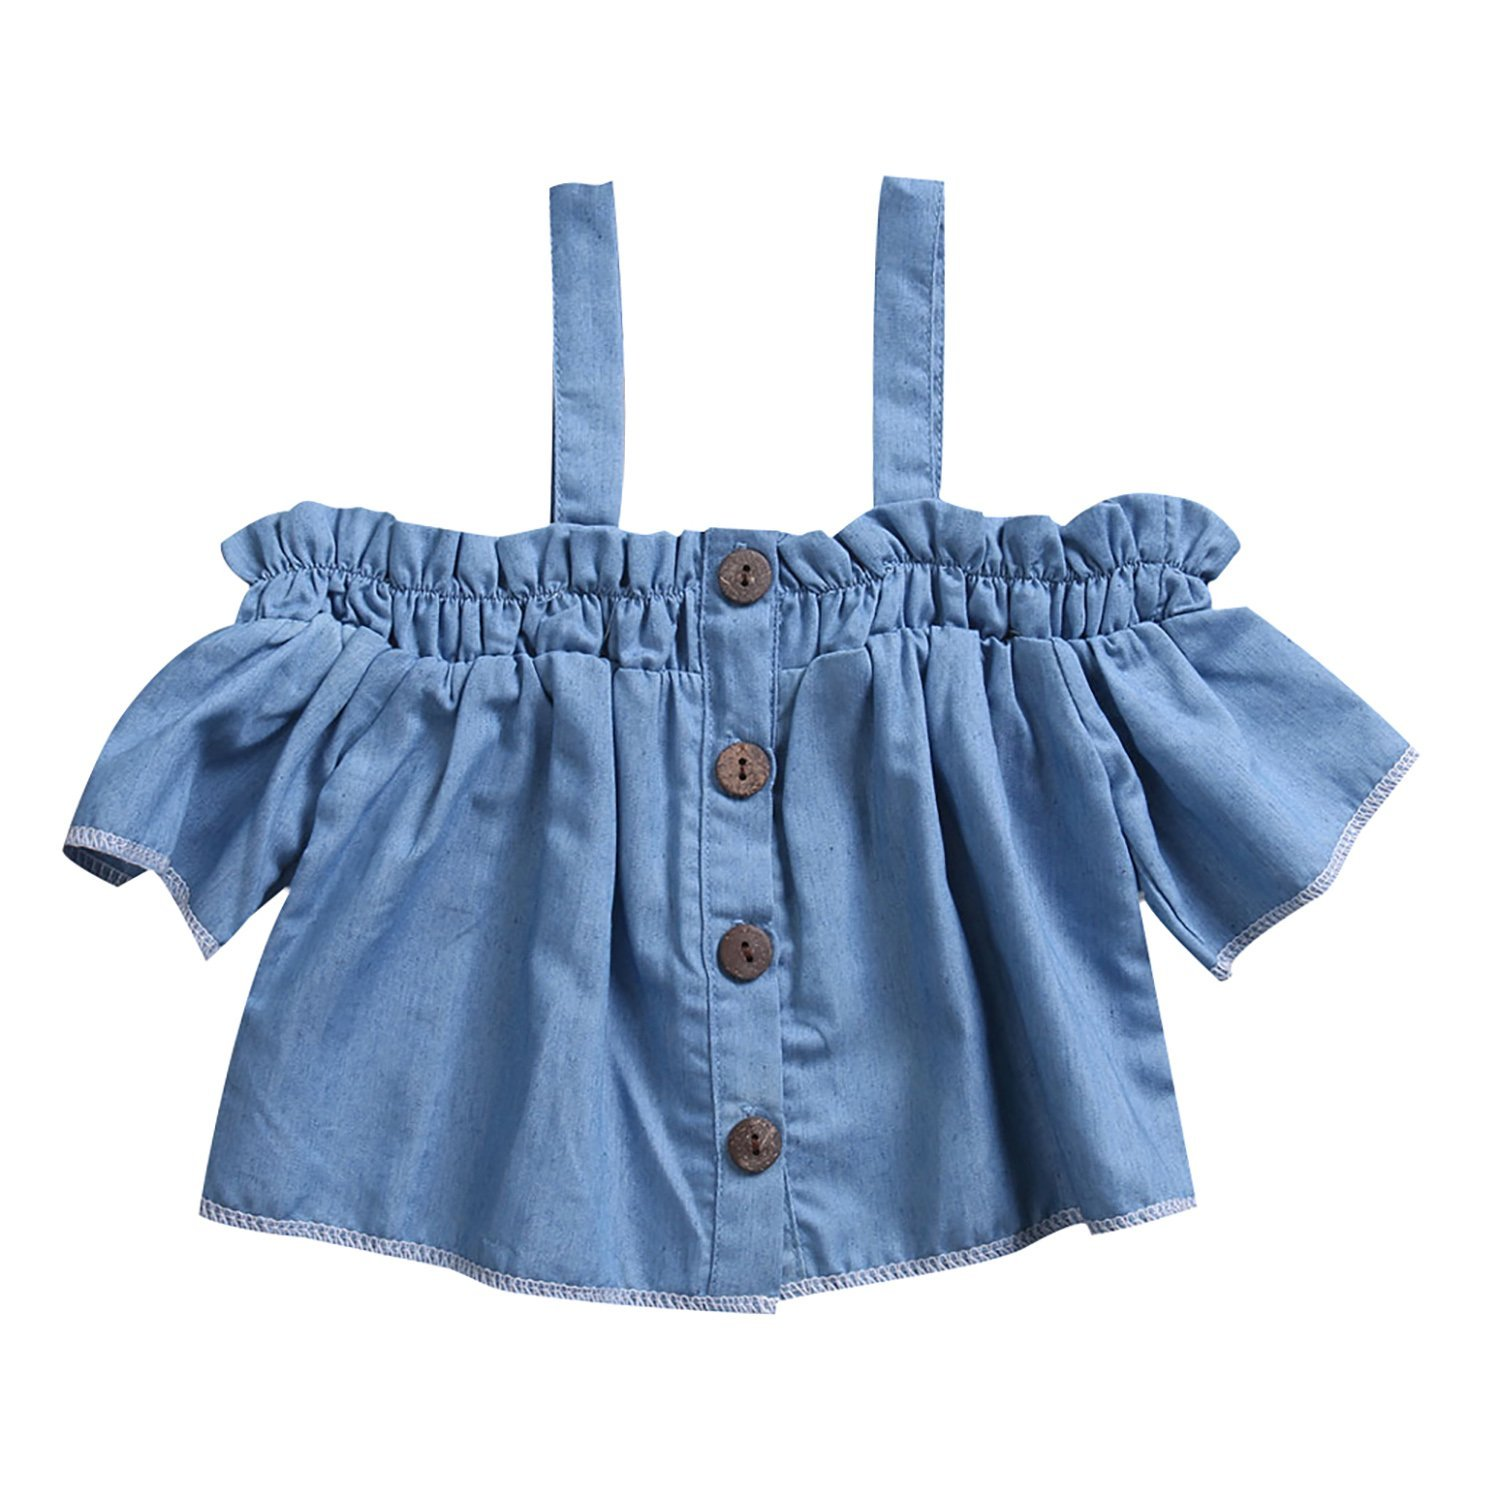 Baby Girl Short Sleeve Denim Top with Buttons